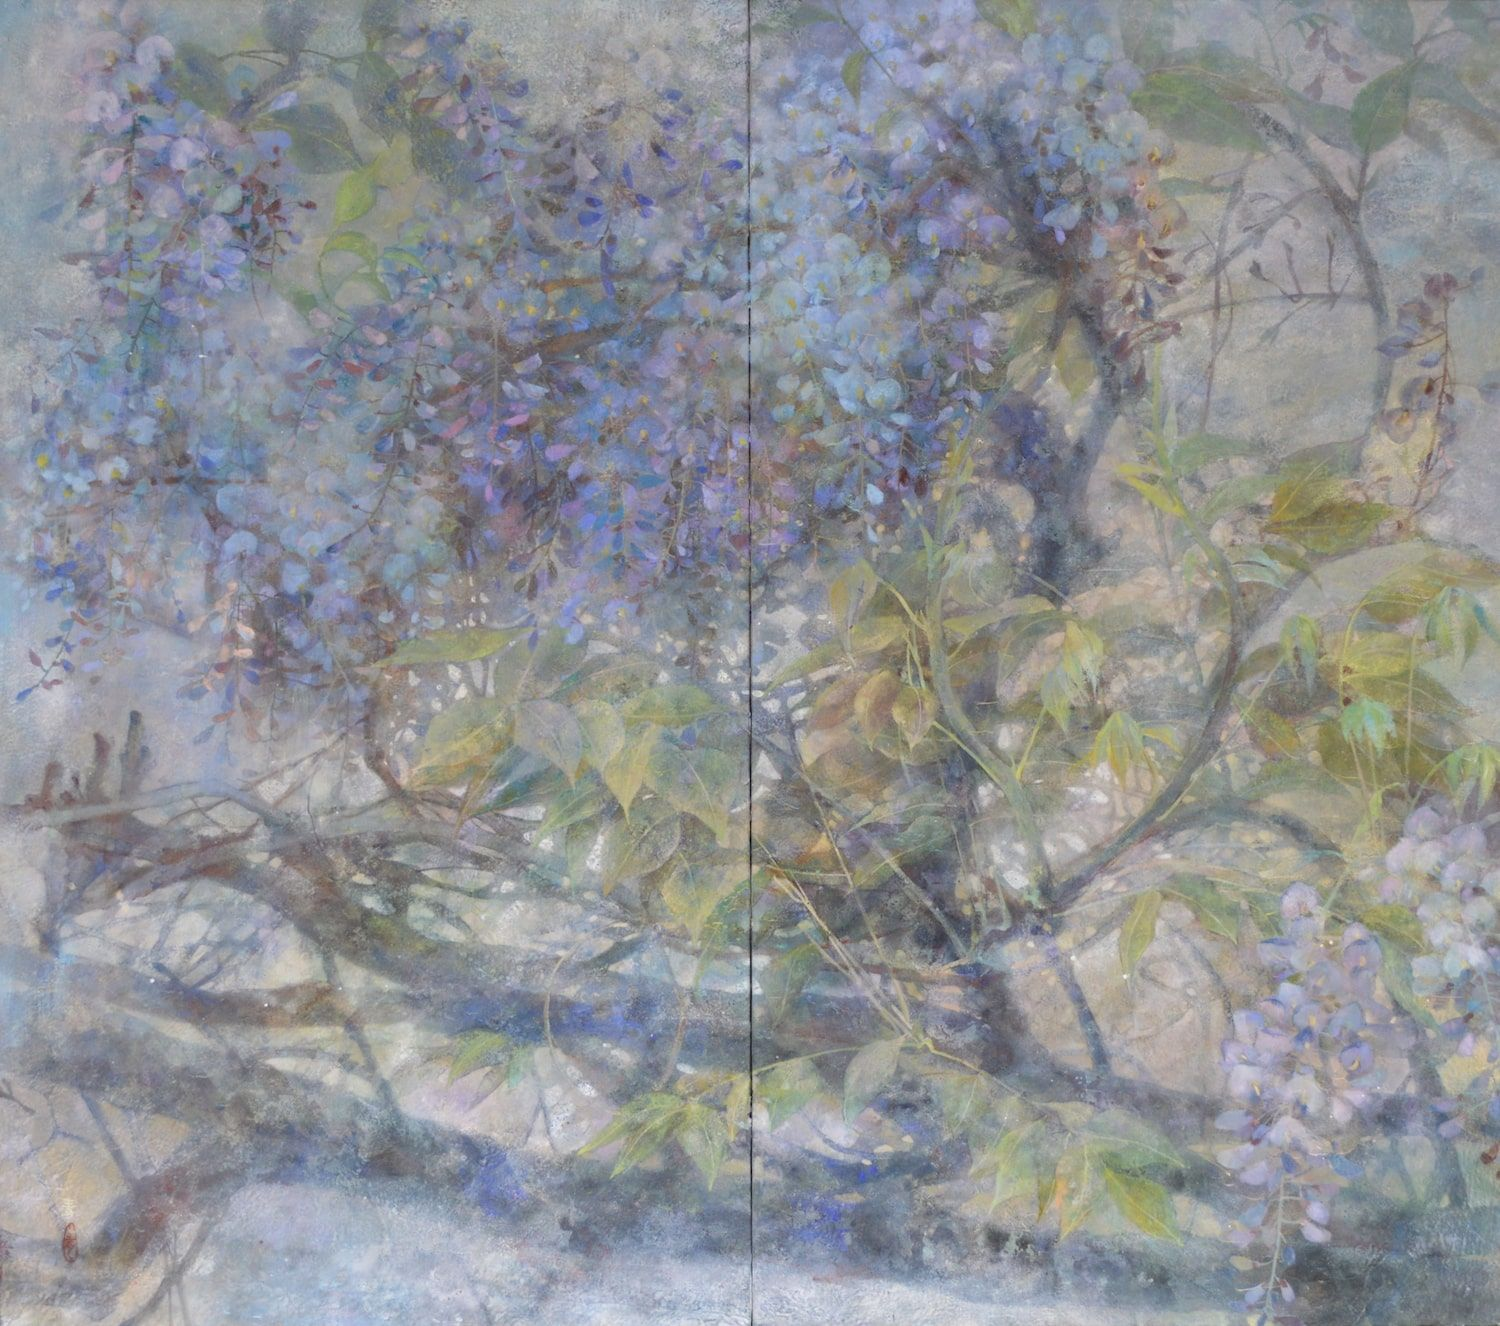 le temps écoulé,Chen Yiching,Contemporary painting